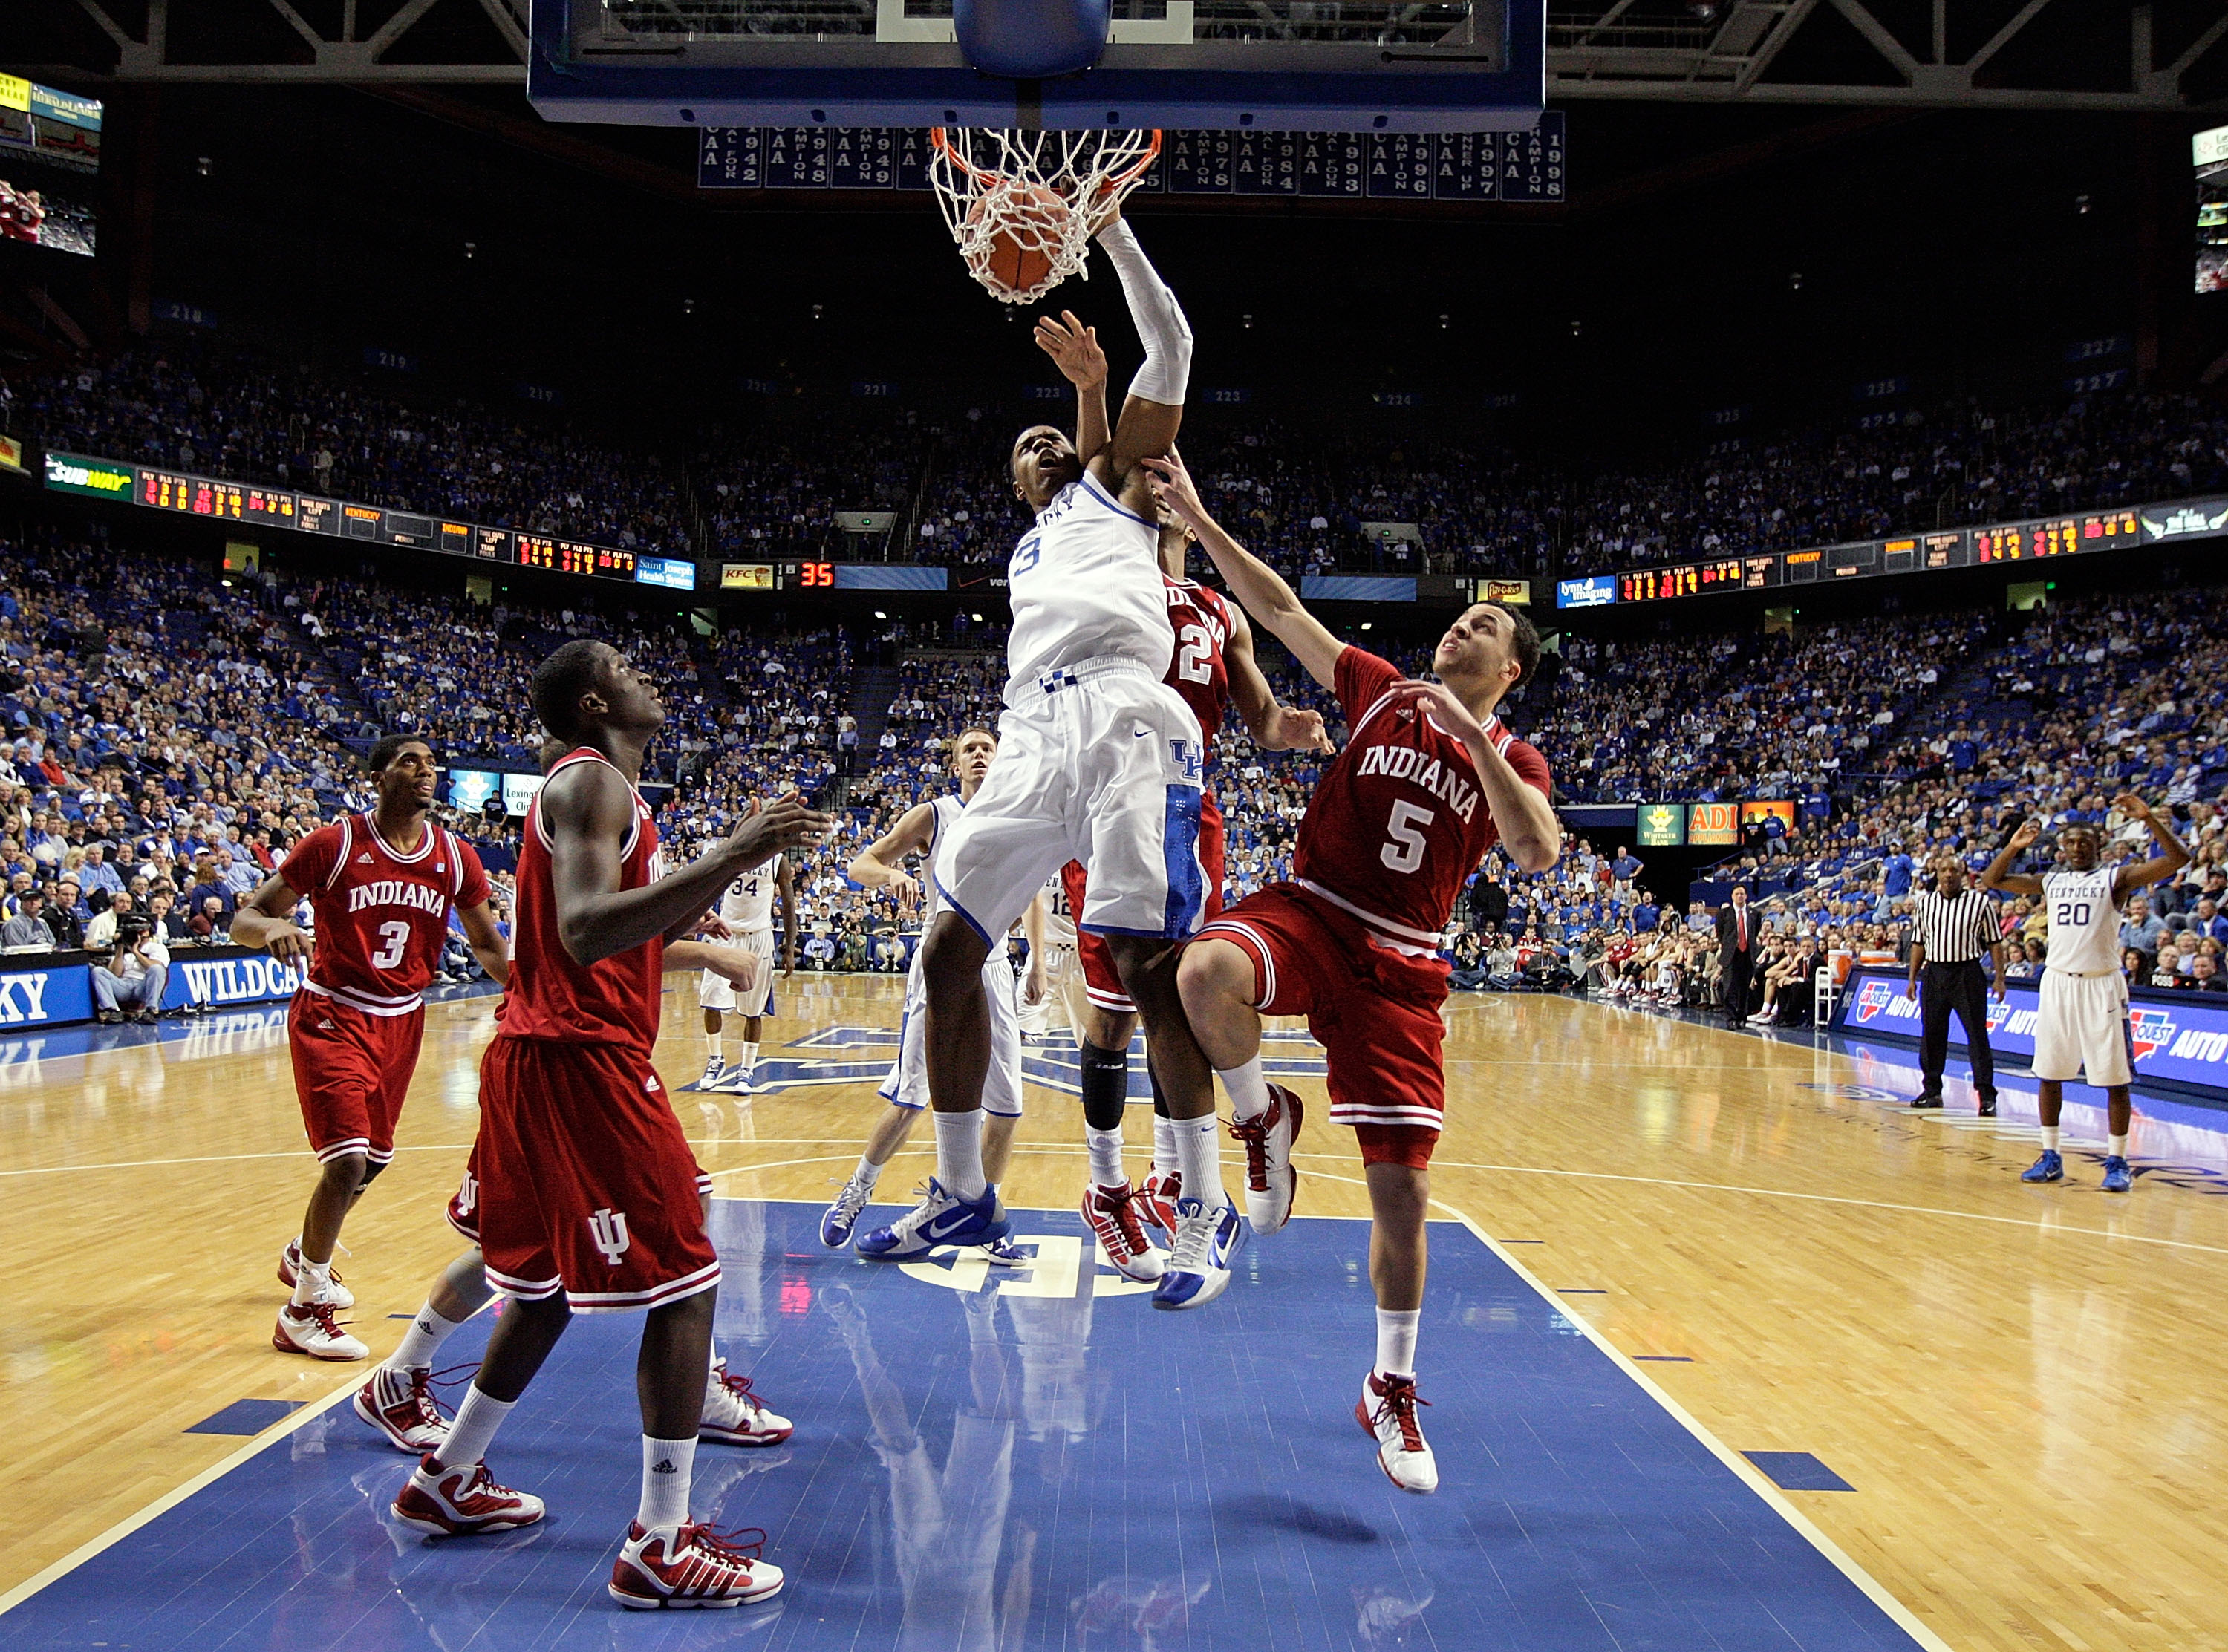 LEXINGTON, KY - DECEMBER 11:  Terrence Jones #3  of the Kentucky Wildcats dunks the ball during the 81-62 victory over the Indiana Hoosiers on December 11, 2010 in Lexington, Kentucky.  (Photo by Andy Lyons/Getty Images)